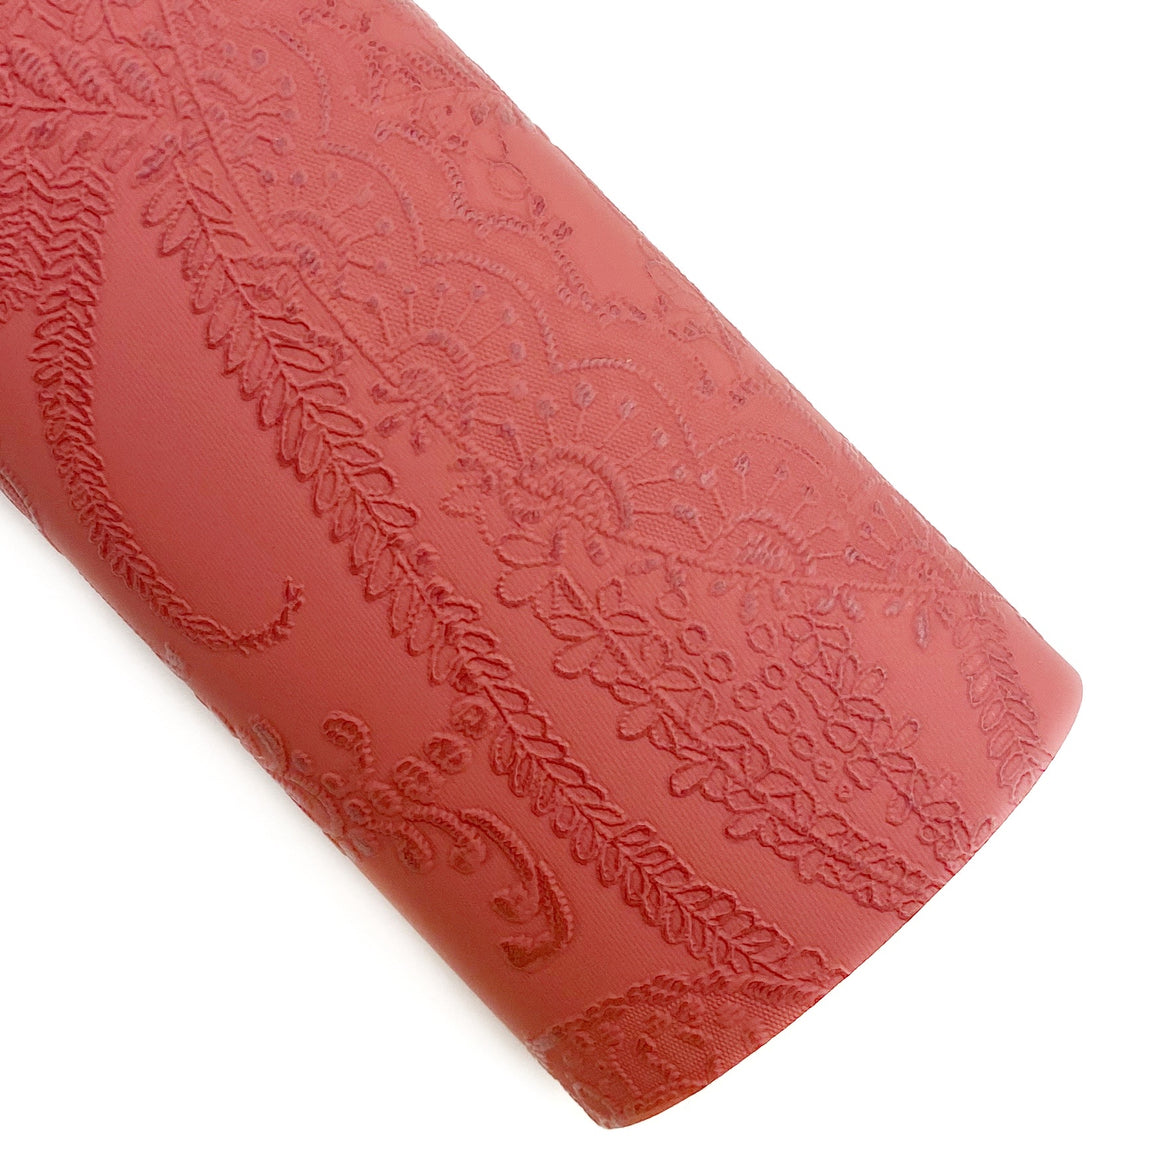 Burnt Red Applique Lace Embossed Vegan Leather